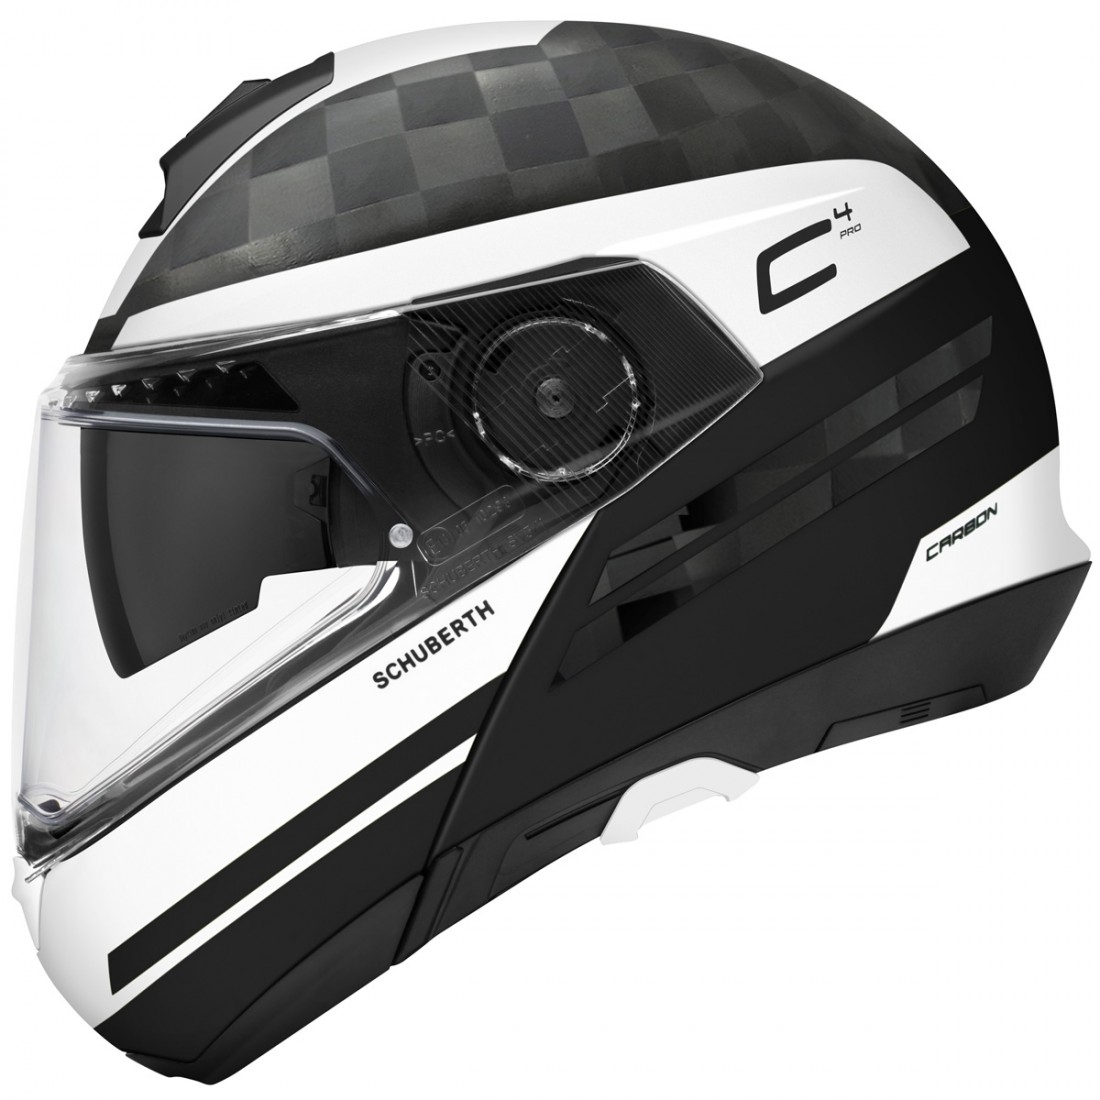 schuberth c4 pro carbon tempest white helmet motocard. Black Bedroom Furniture Sets. Home Design Ideas